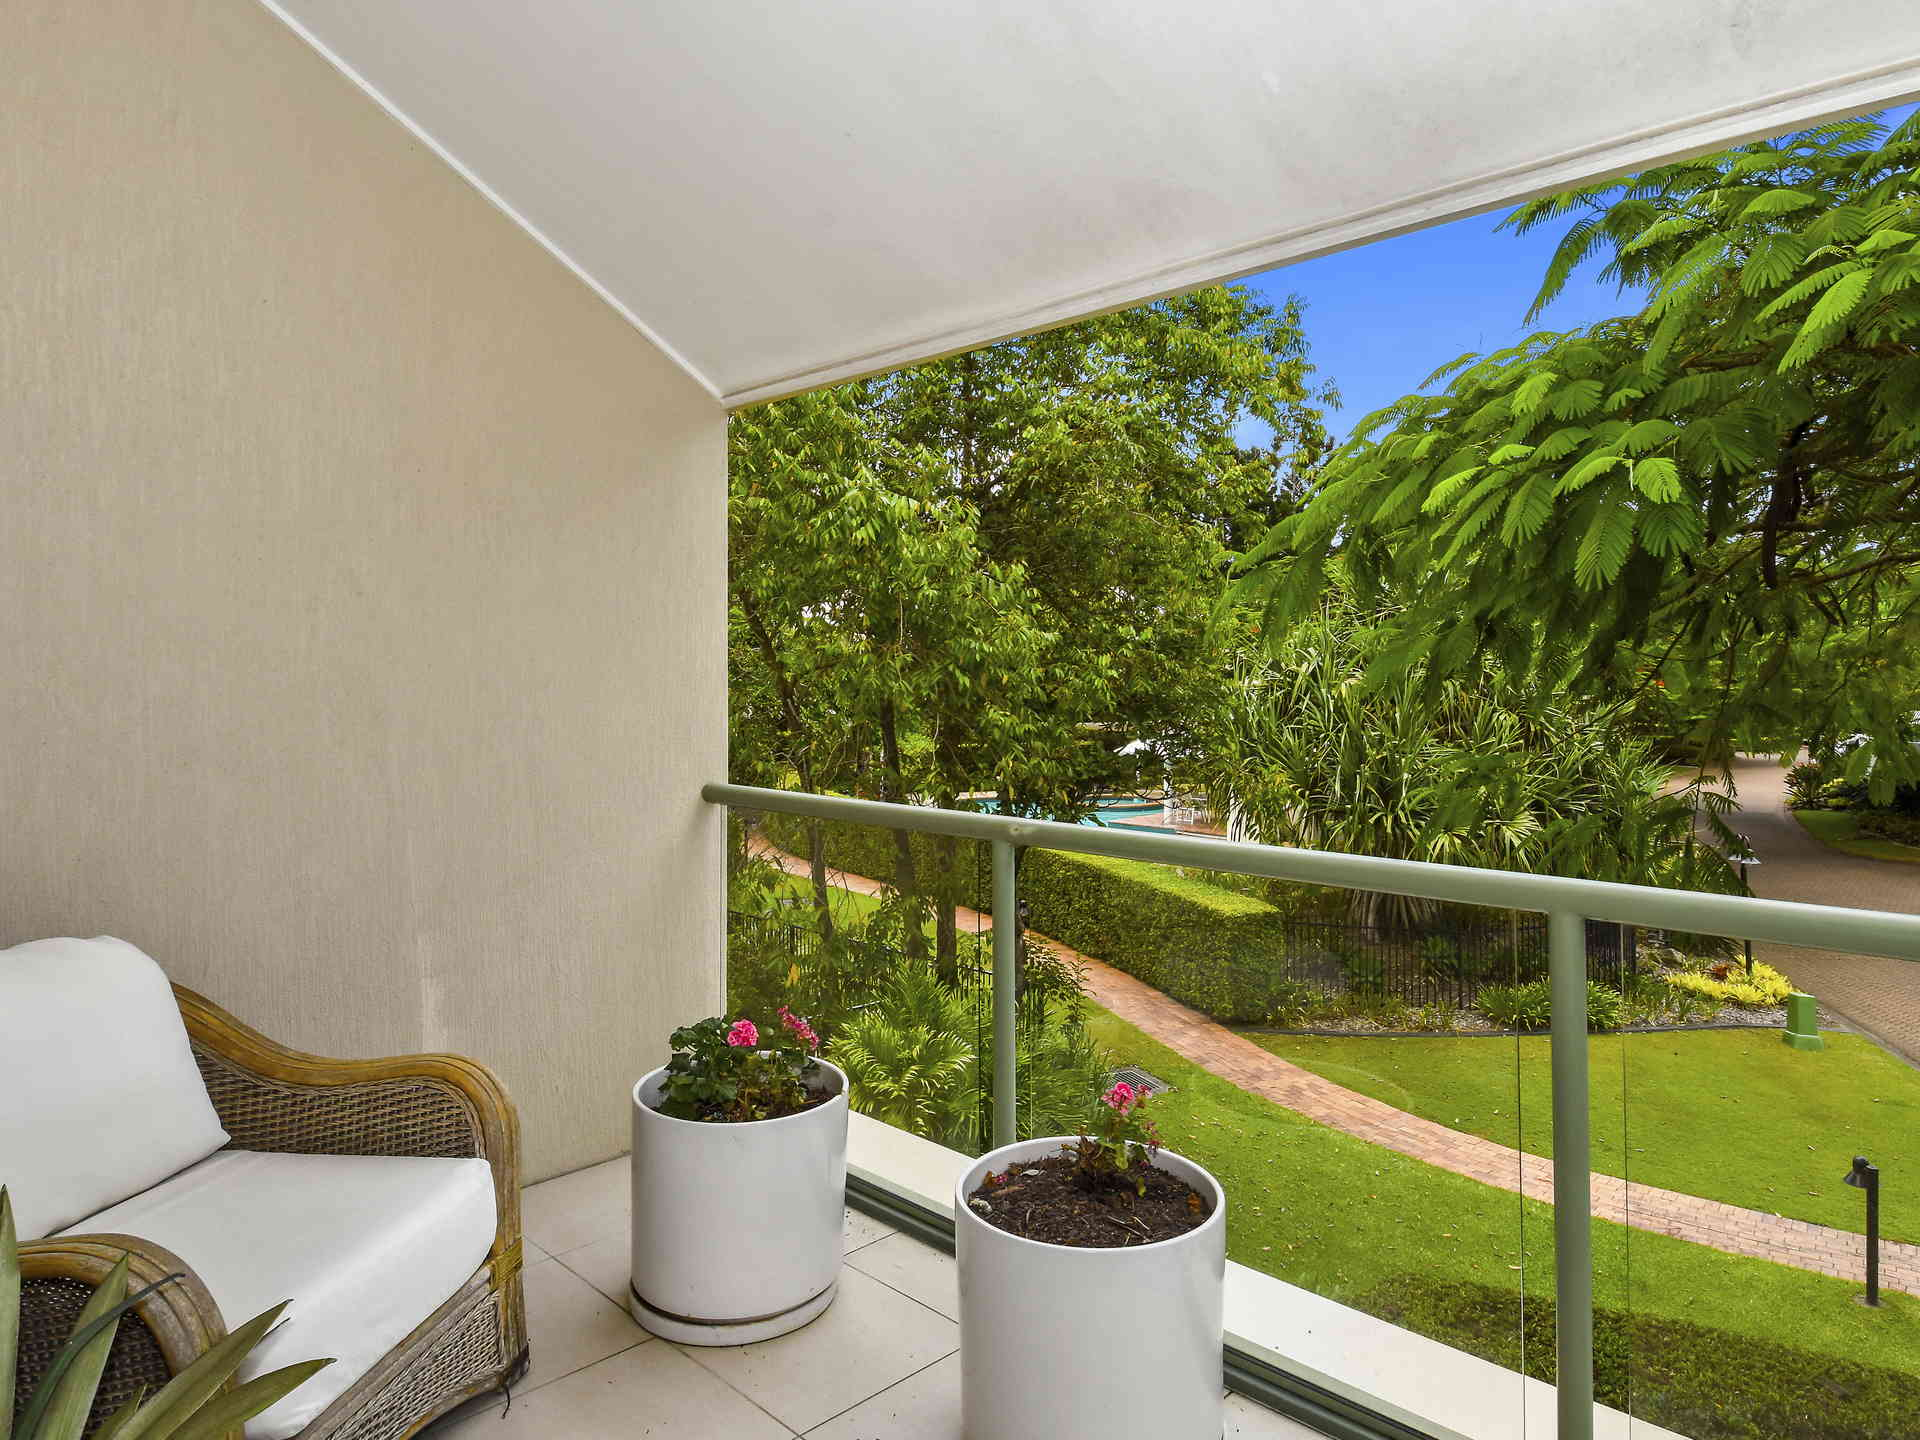 Real Estate   Gold Coast   Chevron Realty   001 Open2view Id494894 2120 Ross Street Royal Pines Benowa